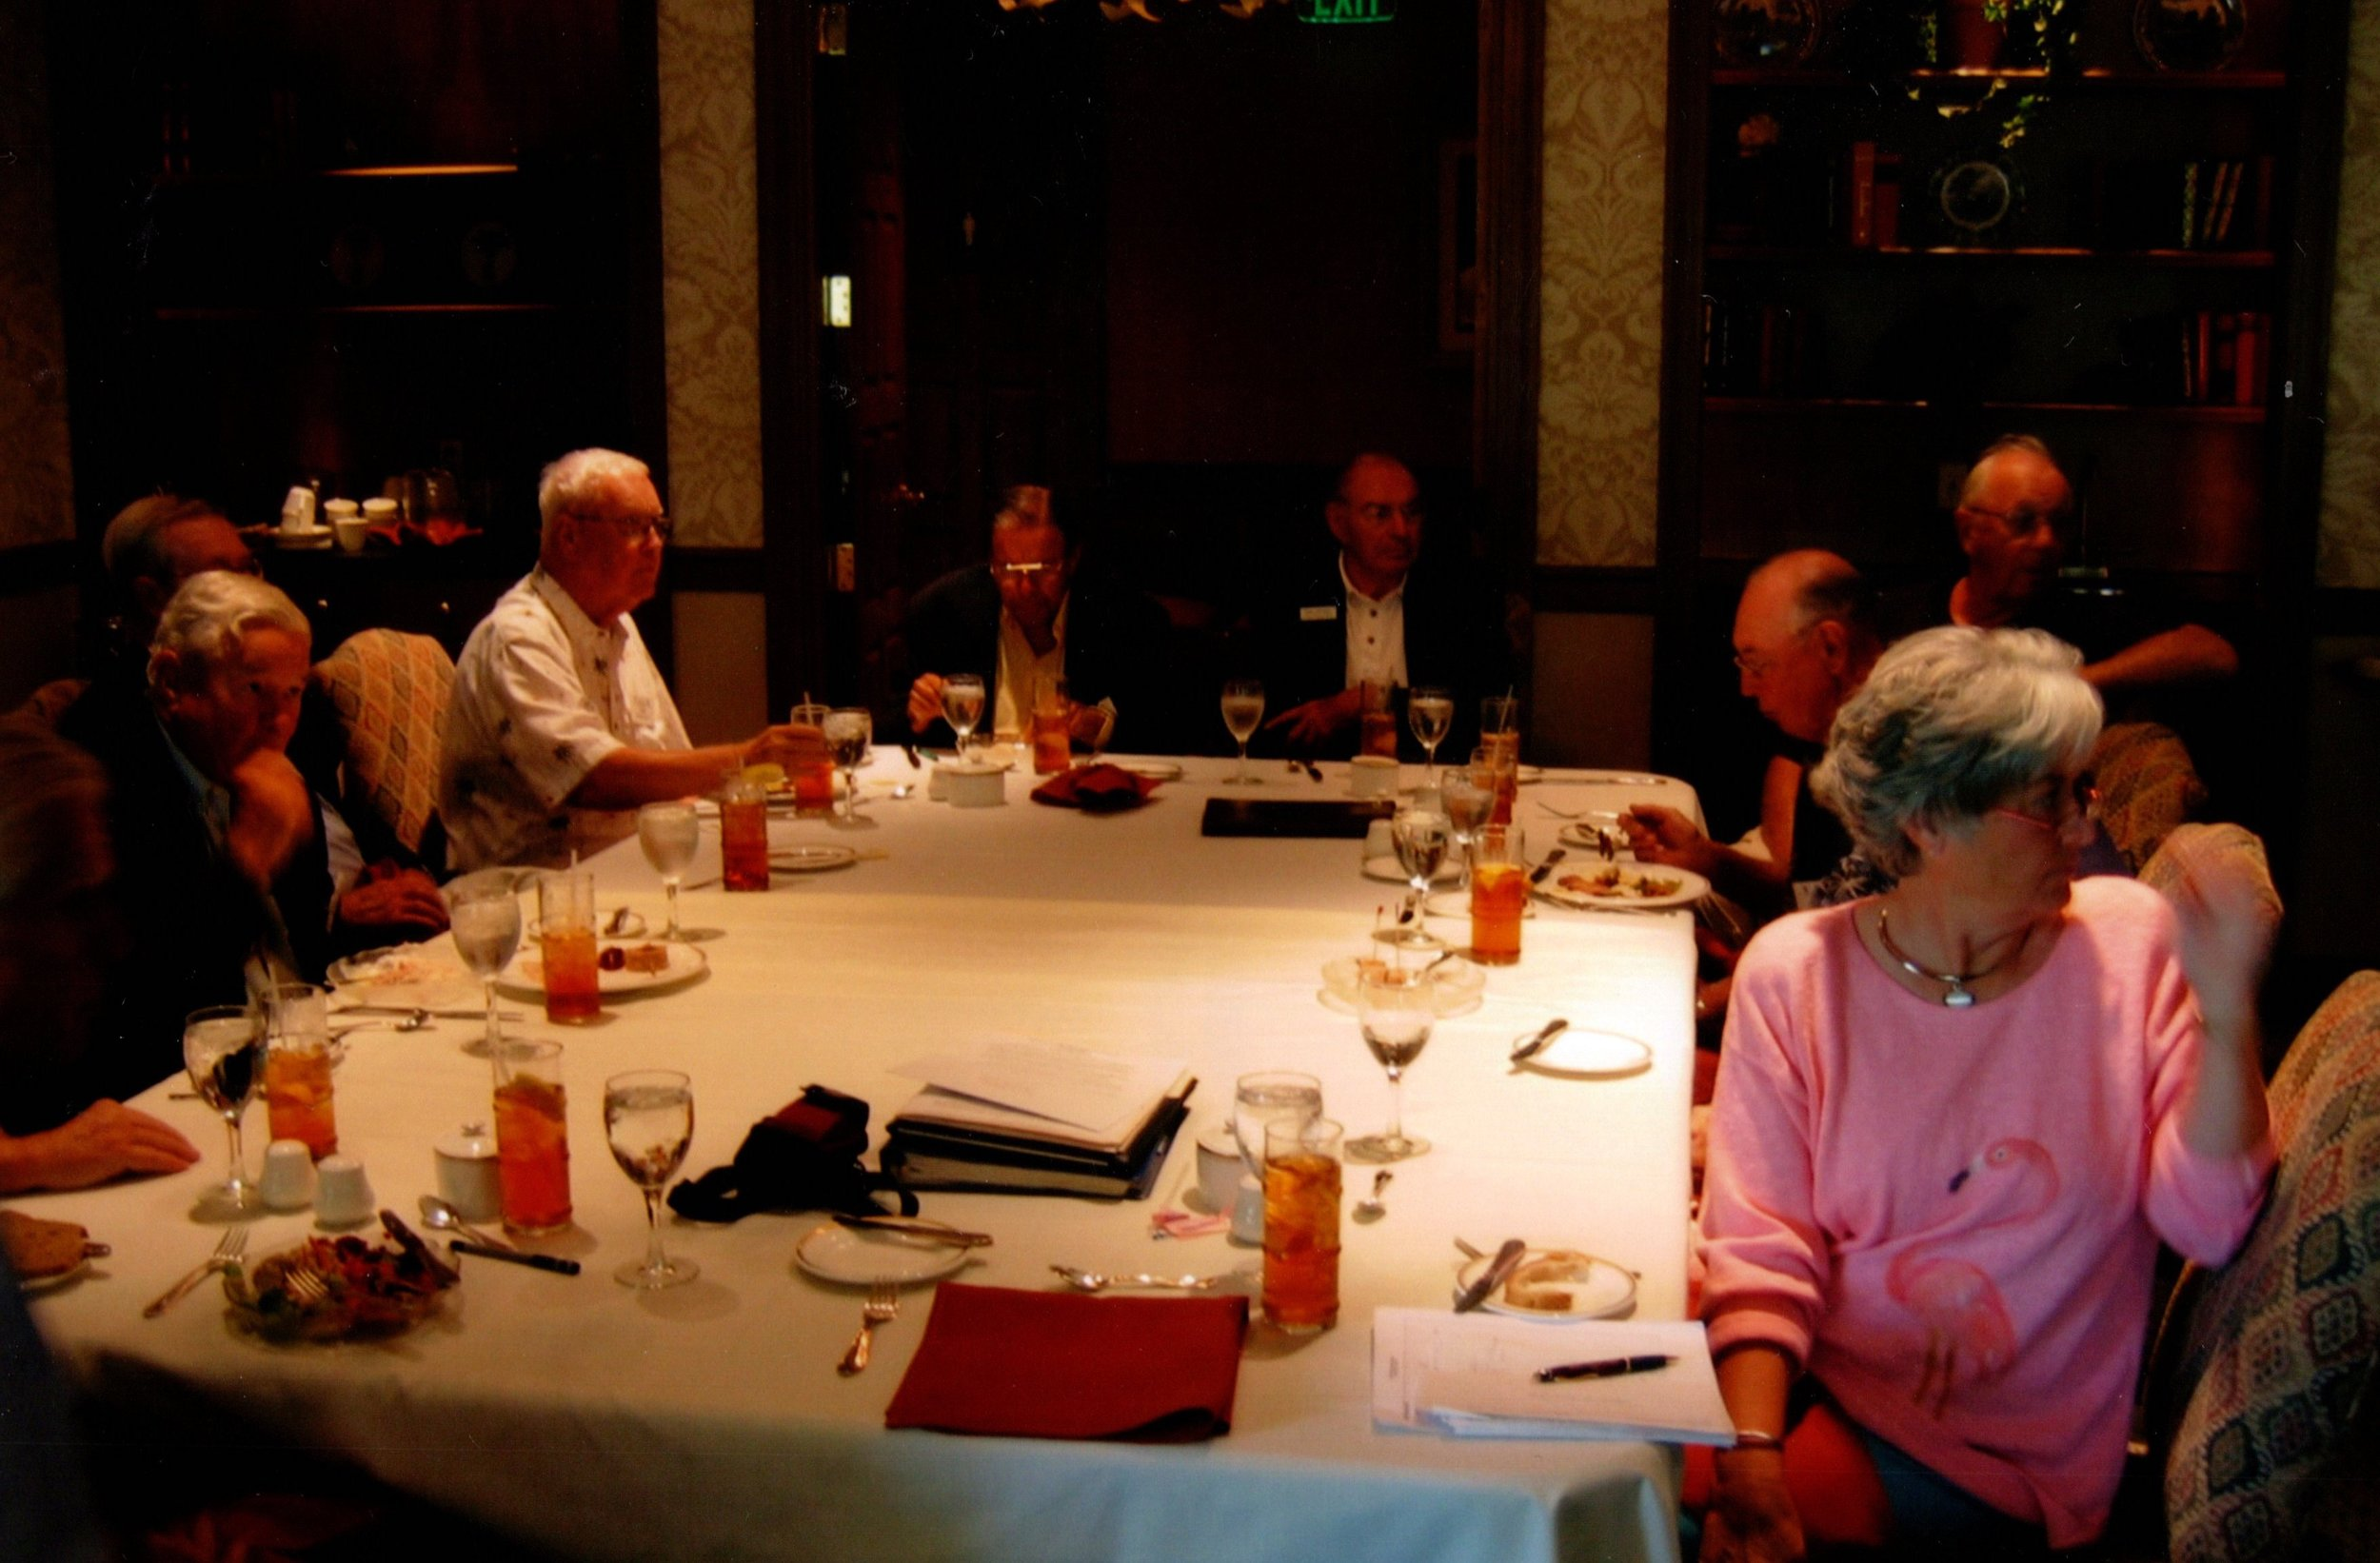 4_14_2005 - SEMI-ANNUAL MEETING OF TRUSTEES 2.jpg